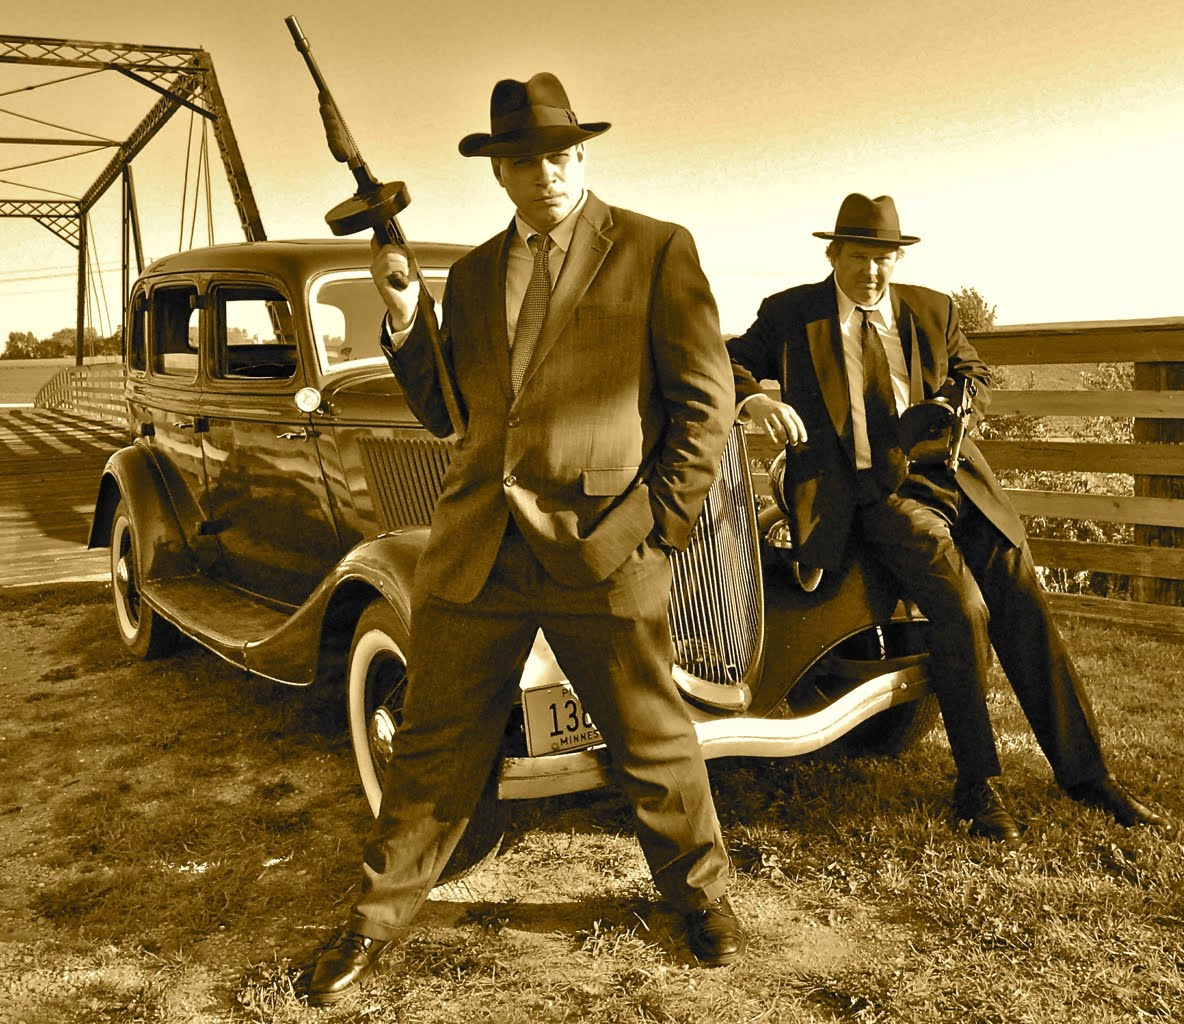 Old Time Gangster, Mobster and Outlaw Names - 38 name list 49